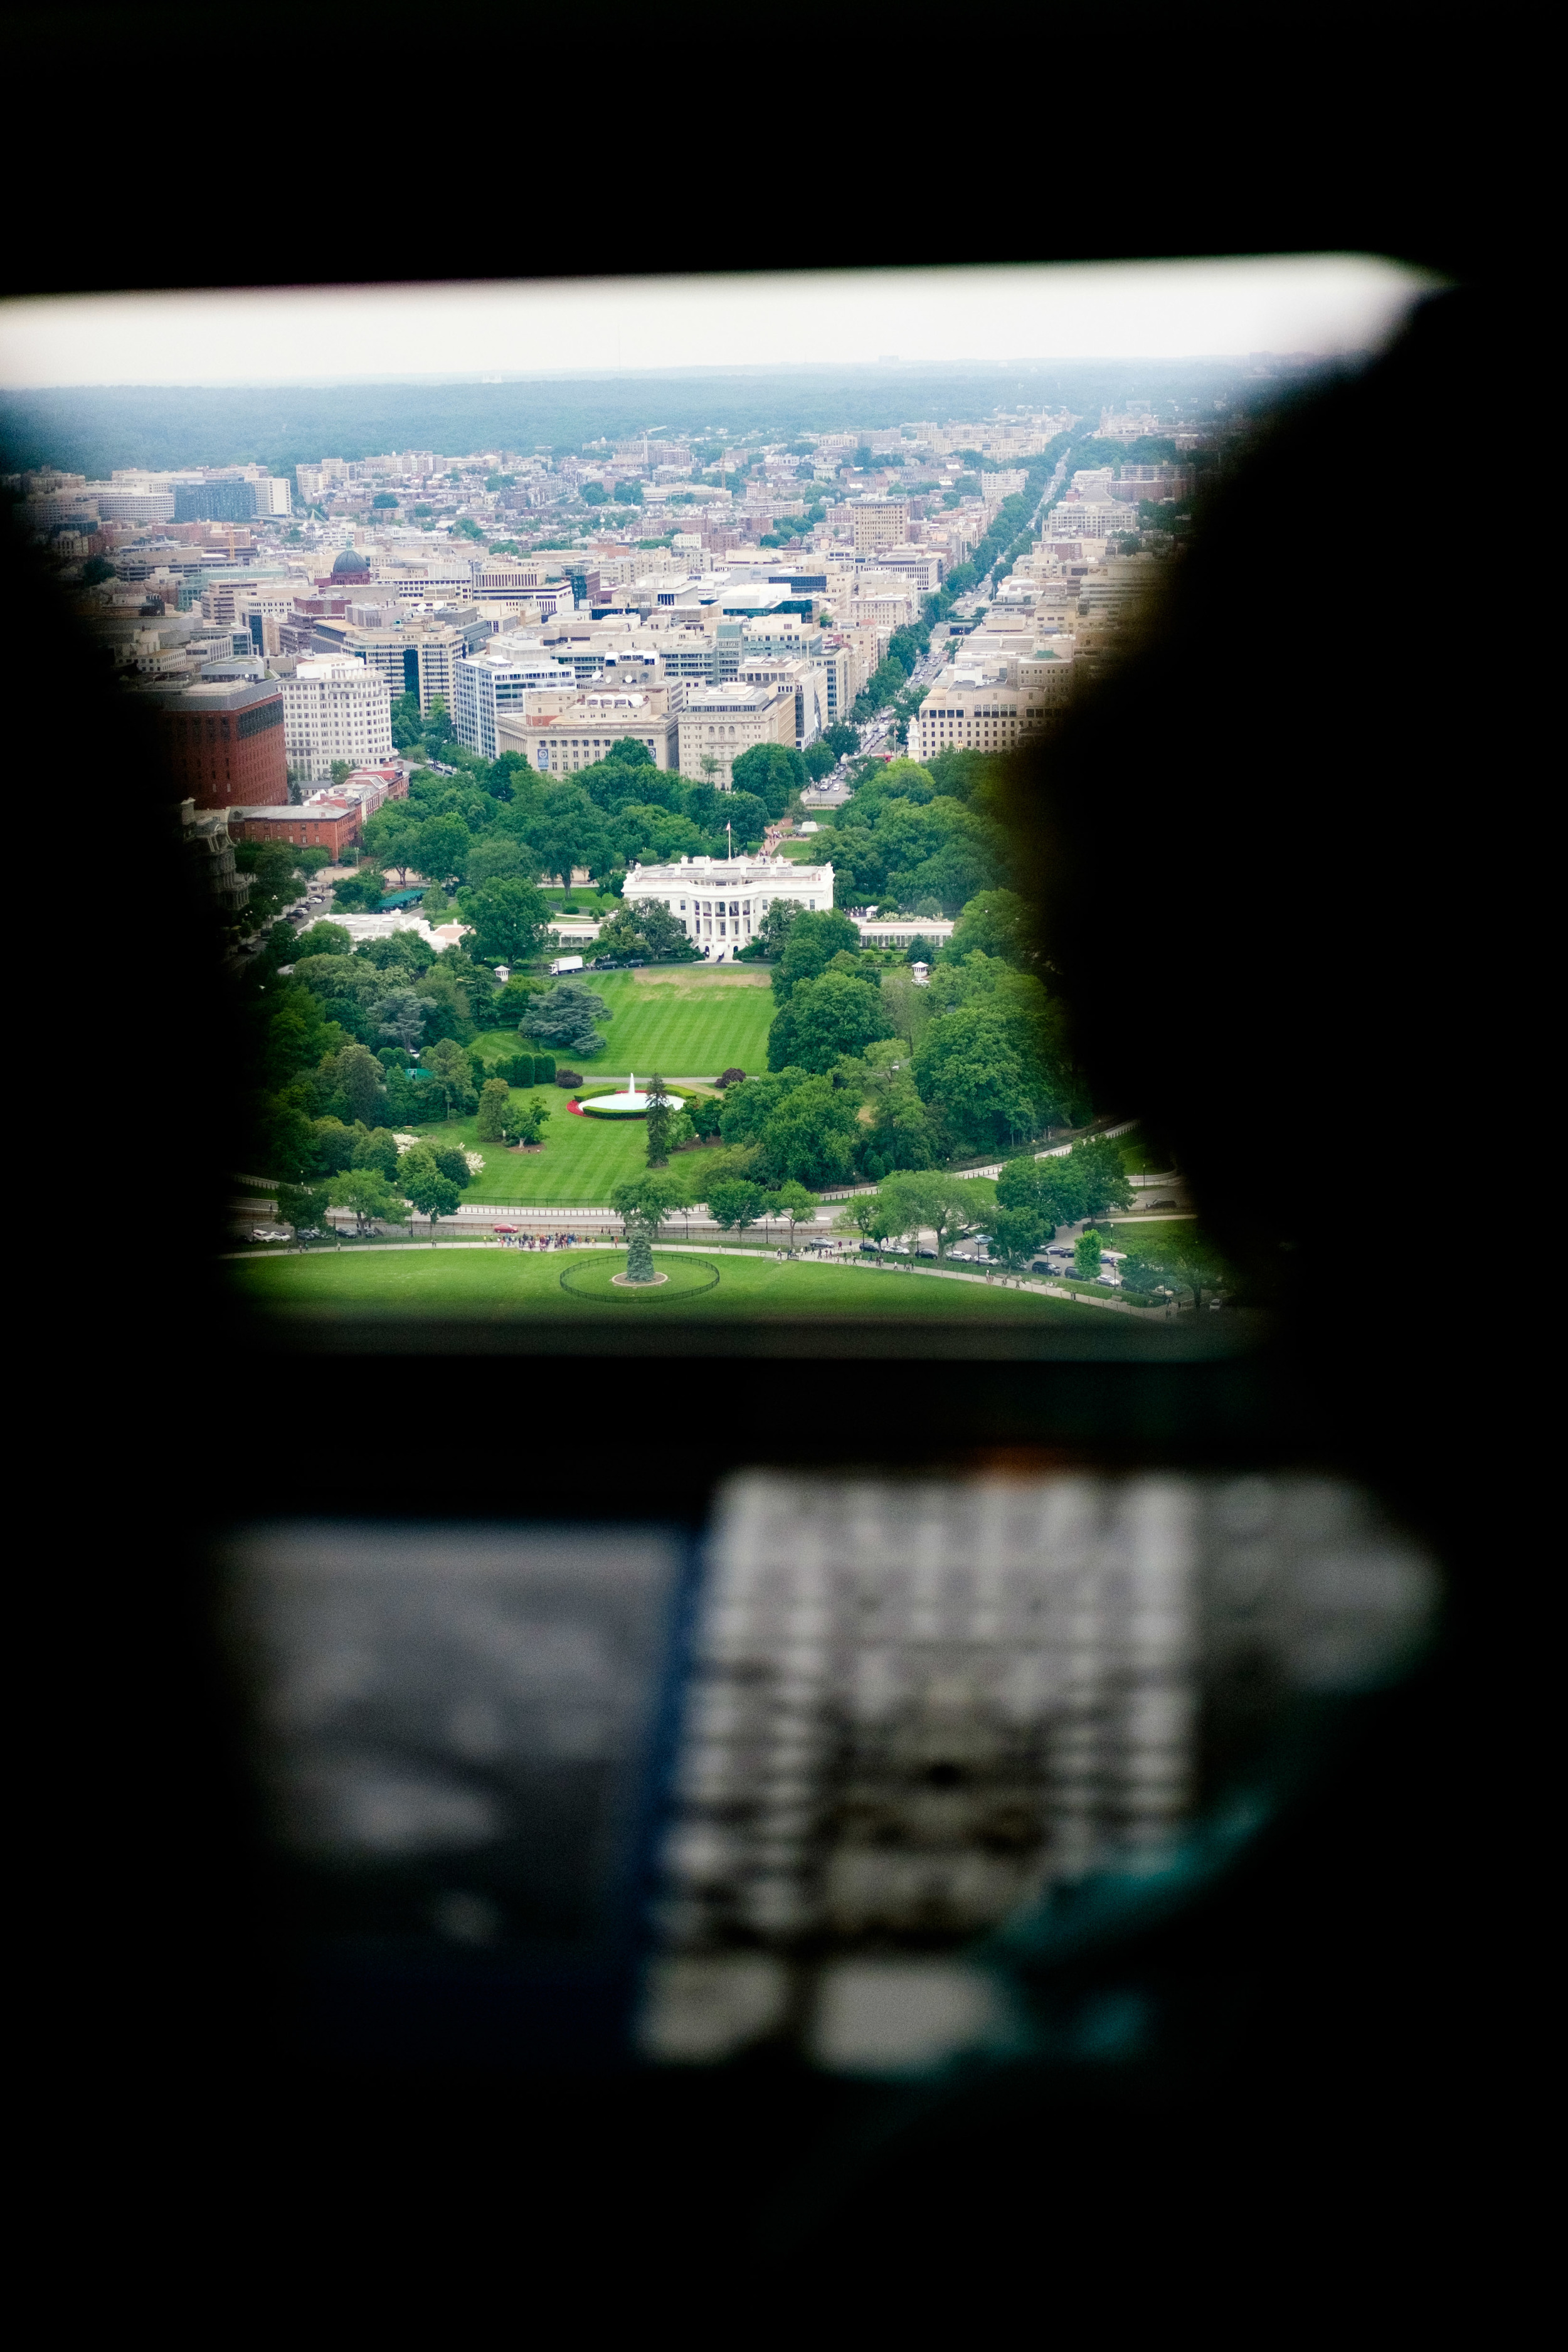 The Whitehouse, photographed from the top of the Washington Monument